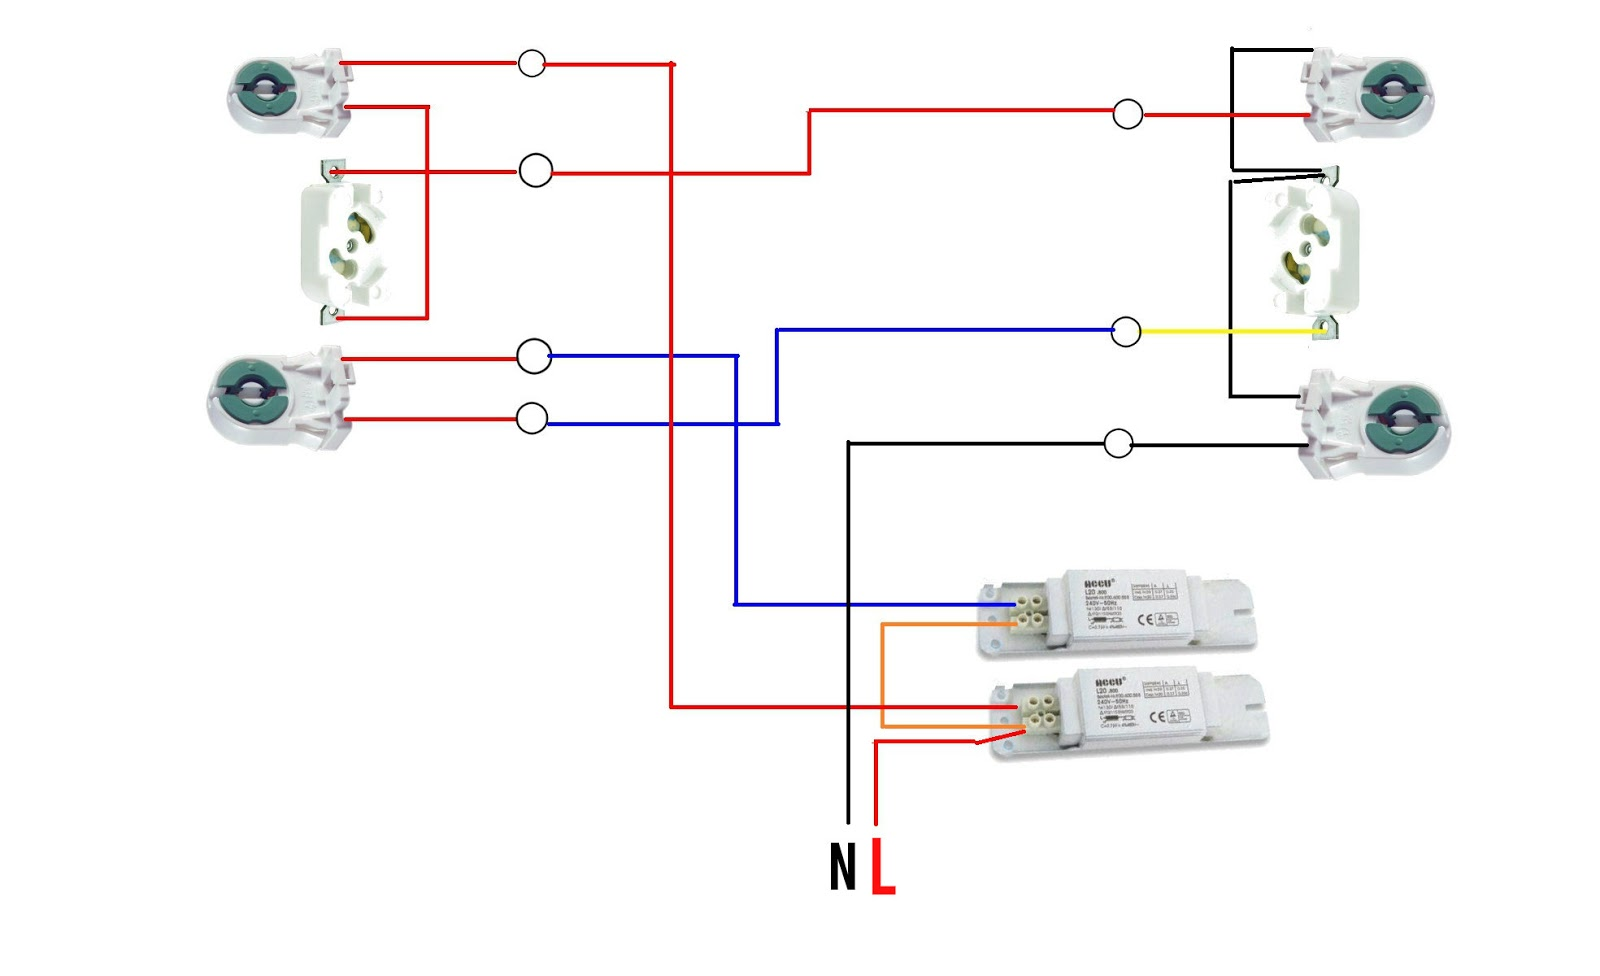 Wiring Diagram Fluorescent Lamp : The world through electricity double fluorescent light